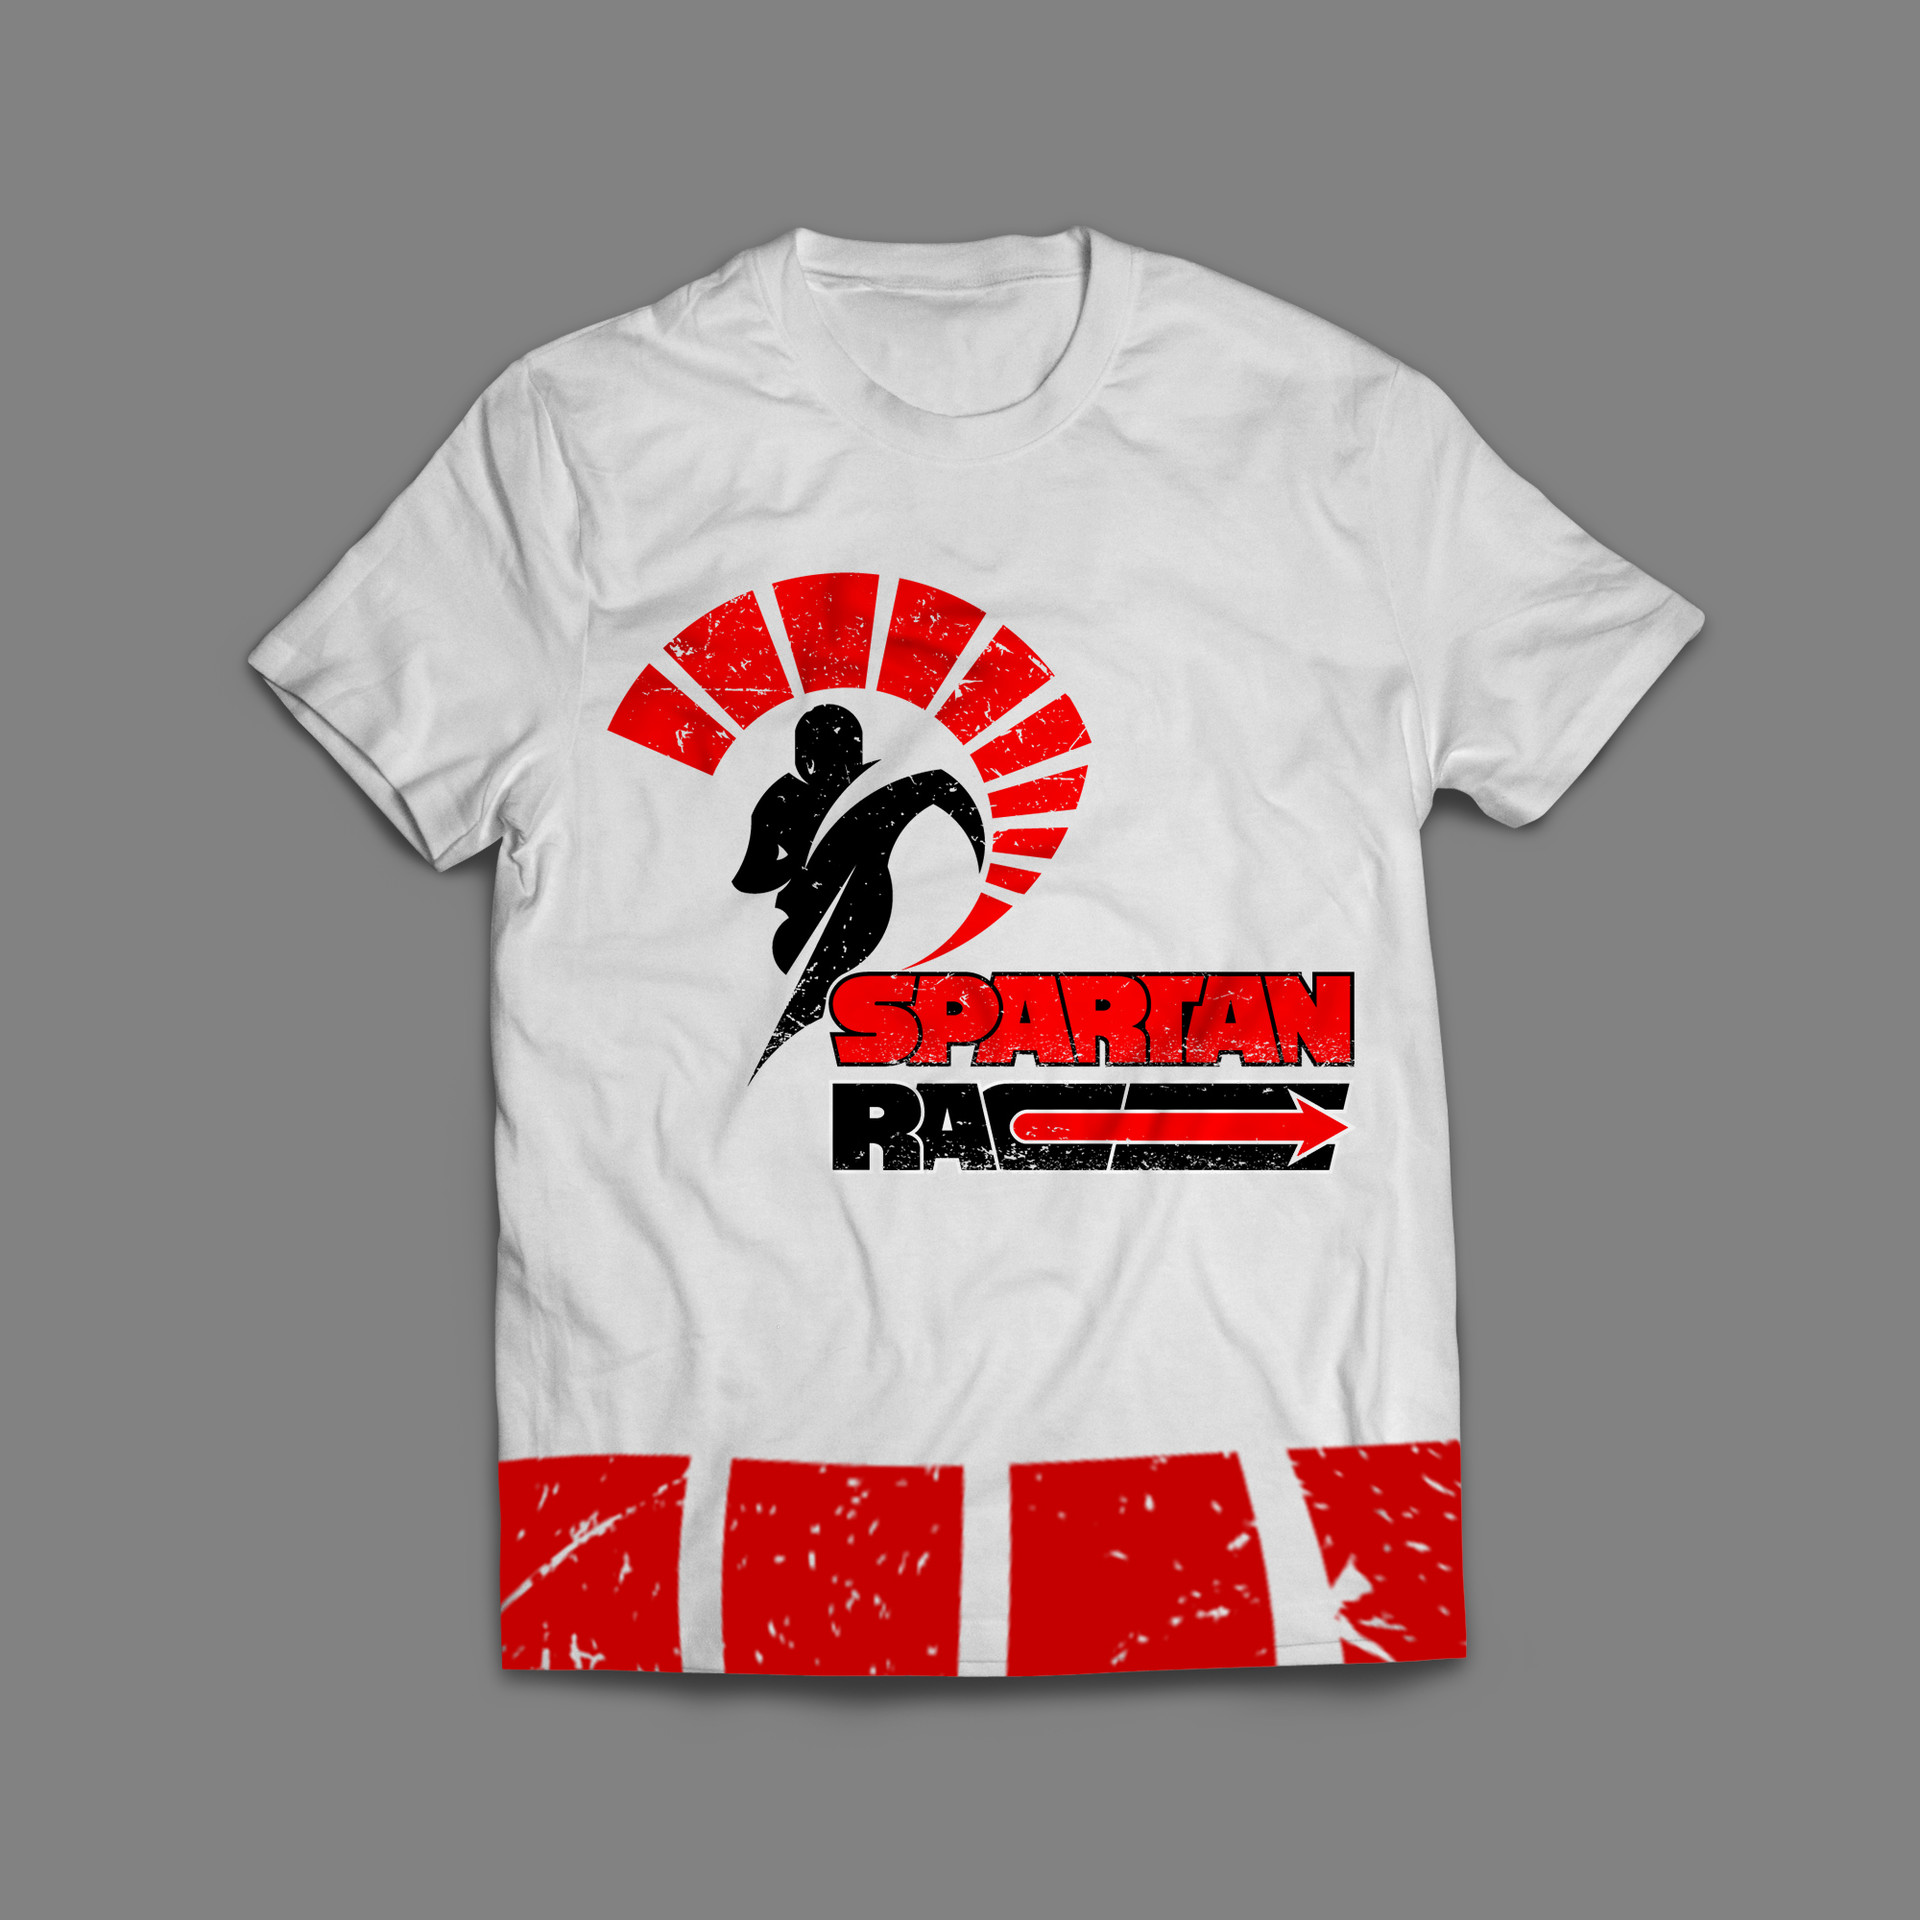 Richard t white jr spartanrace tshirtmockup 04